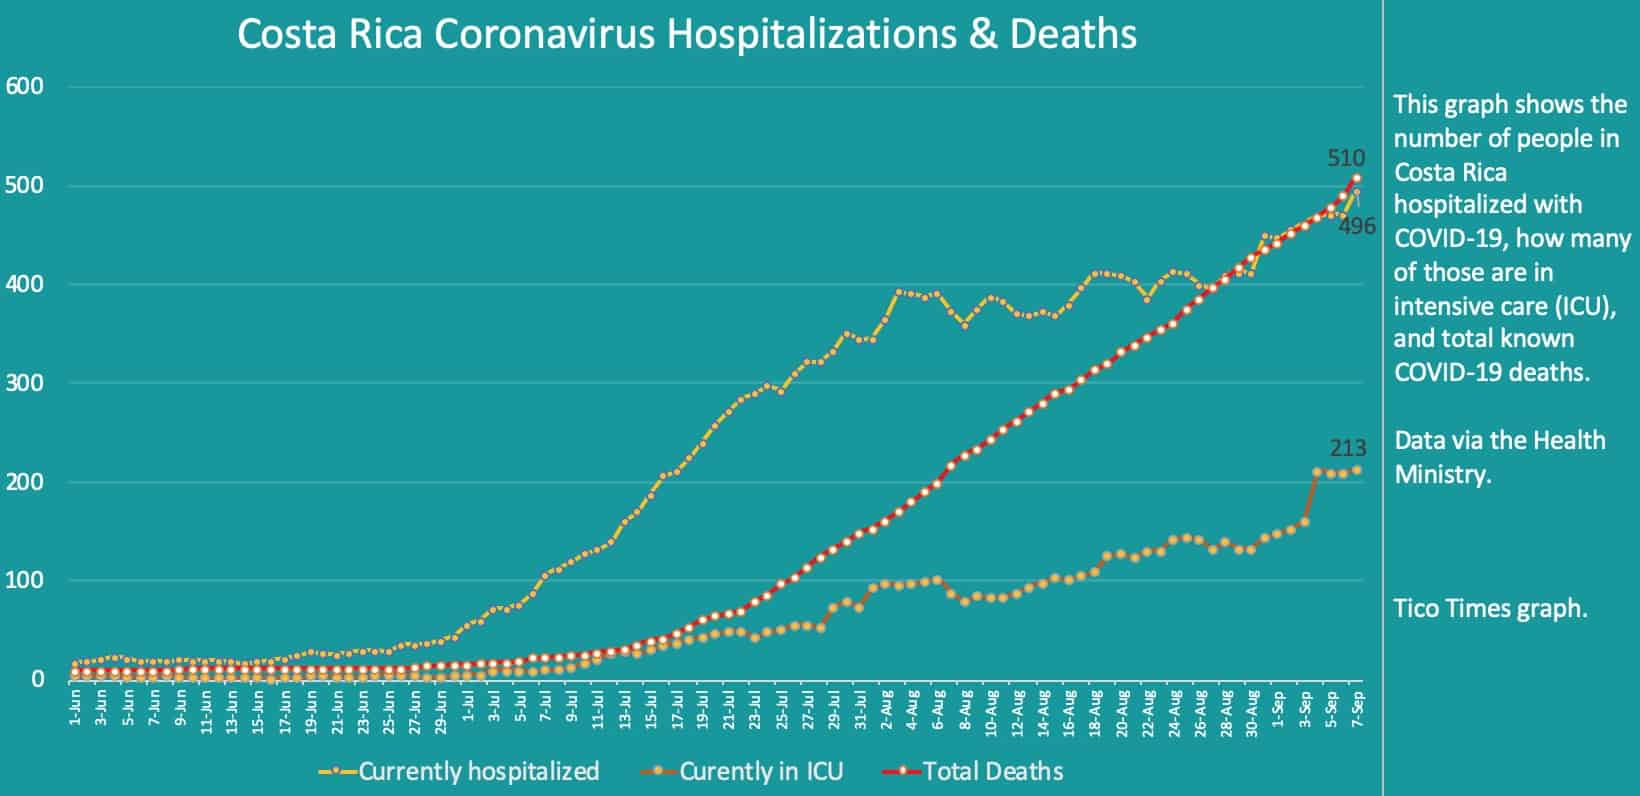 Costa Rica coronavirus hospitalizations and deaths on September 7, 2020